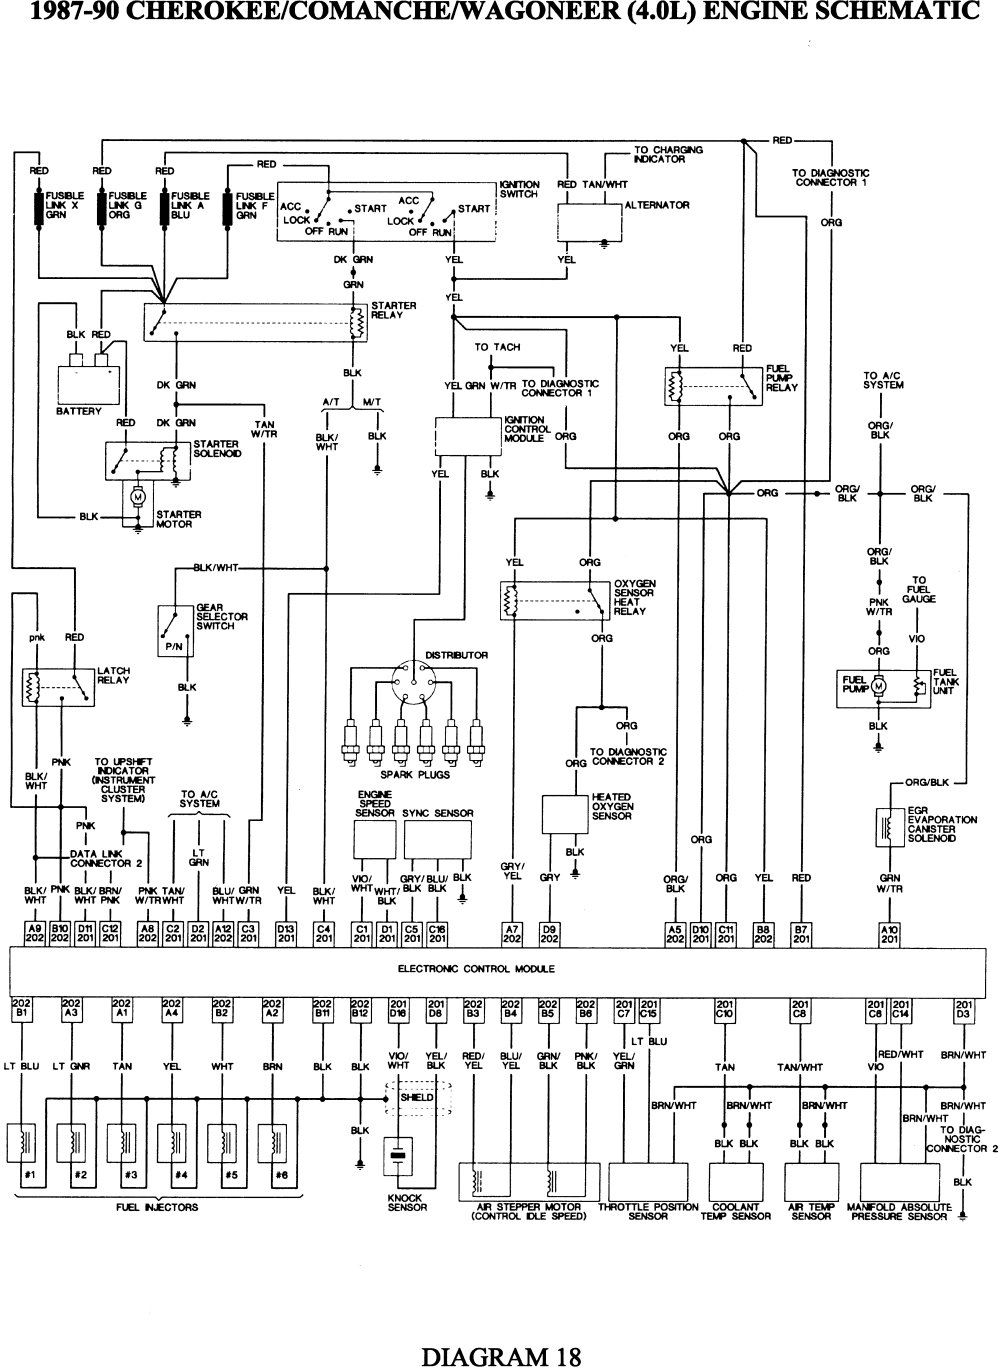 medium resolution of yj engine diagram wiring diagram mega 1990 jeep wrangler engine diagram